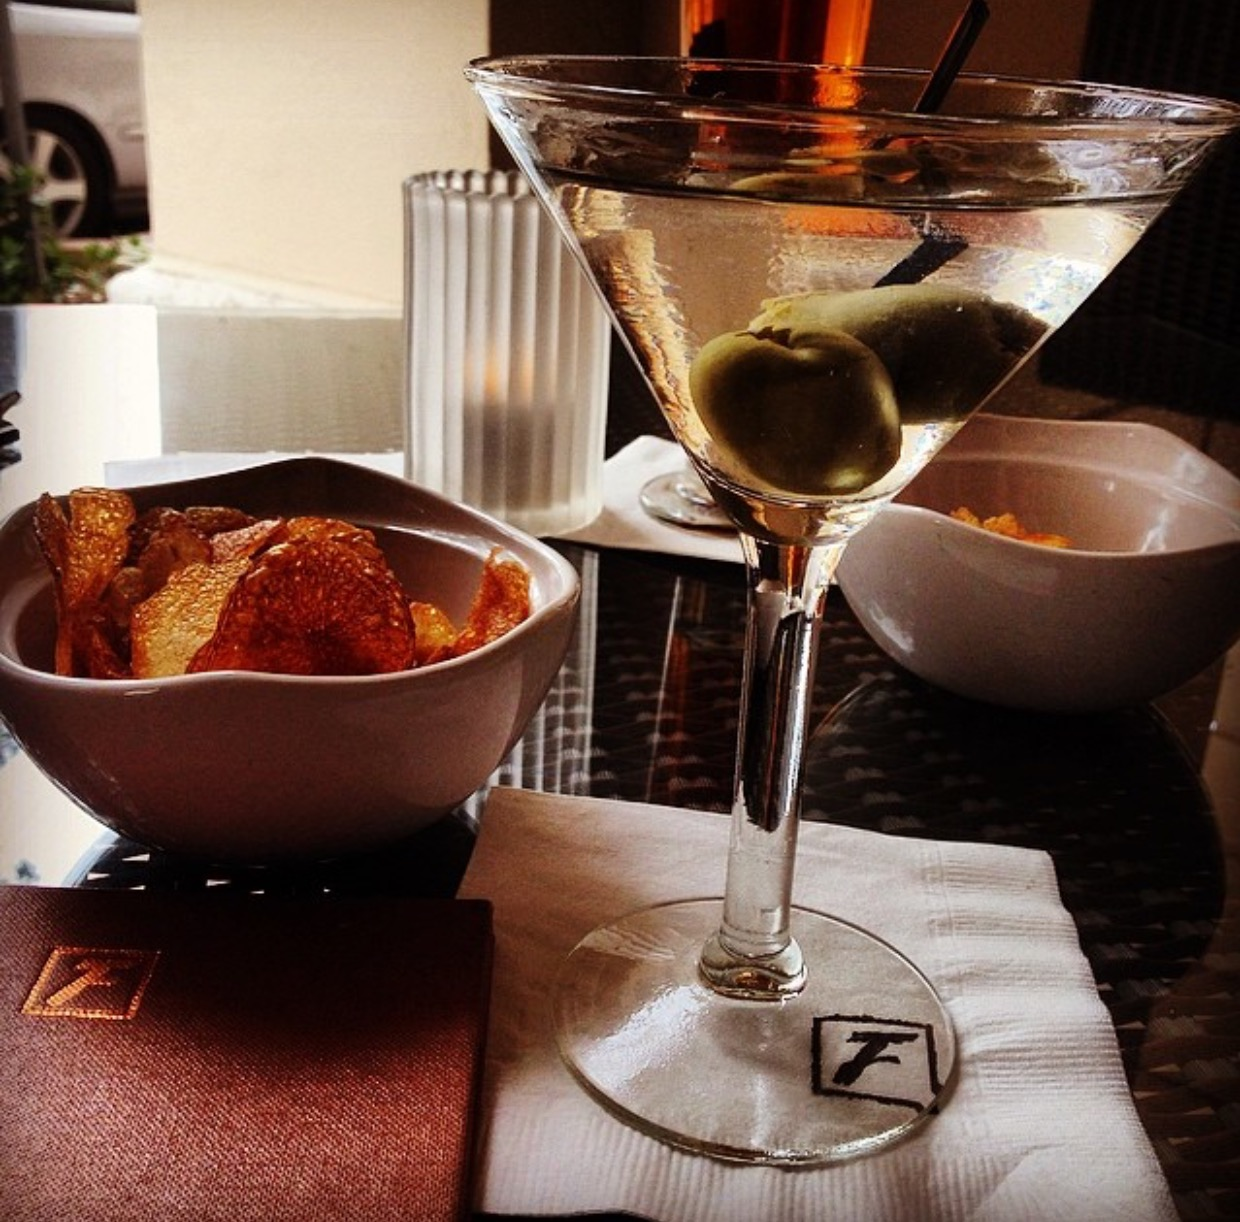 Flemings offers happy hour all 7 days of the week from 5pm-7pm with select cocktails, wines and beer special (the season beer is 2x$6) and appetizers ranging from $6-$9 and again from 8pm-10pm with different variety of drinks and small plates ranging from $9-$11. We are loving the Flemings Prime Burger with your choice of cheese and bacon plus a side of fries or onion rings which is a steal at $8 during the 5pm-7pm hours and still a bargain at $10 from 8pm-10pm.